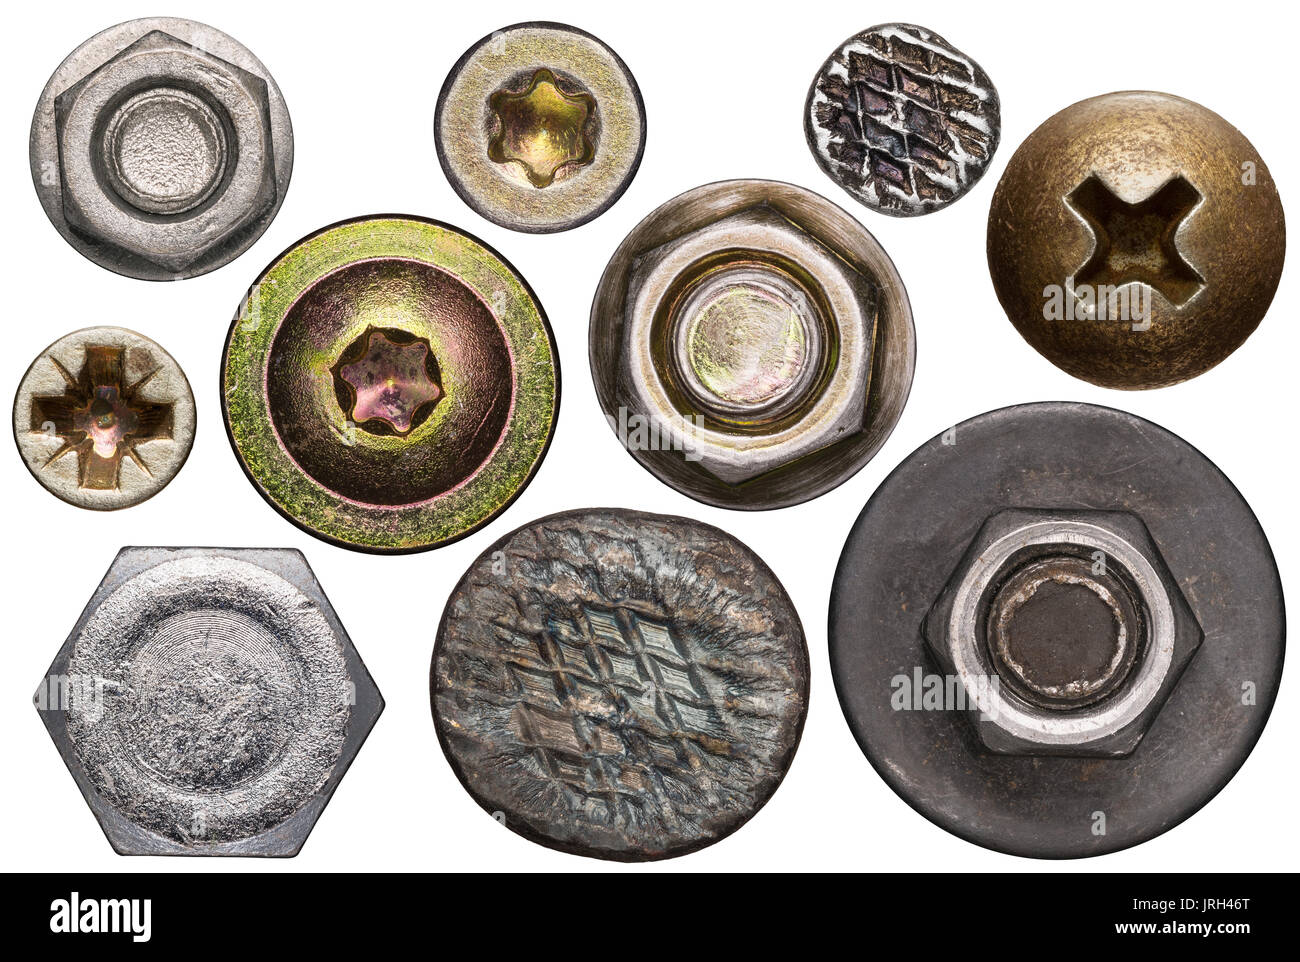 Screw and nail heads, nuts, rivets isolated on white. - Stock Image